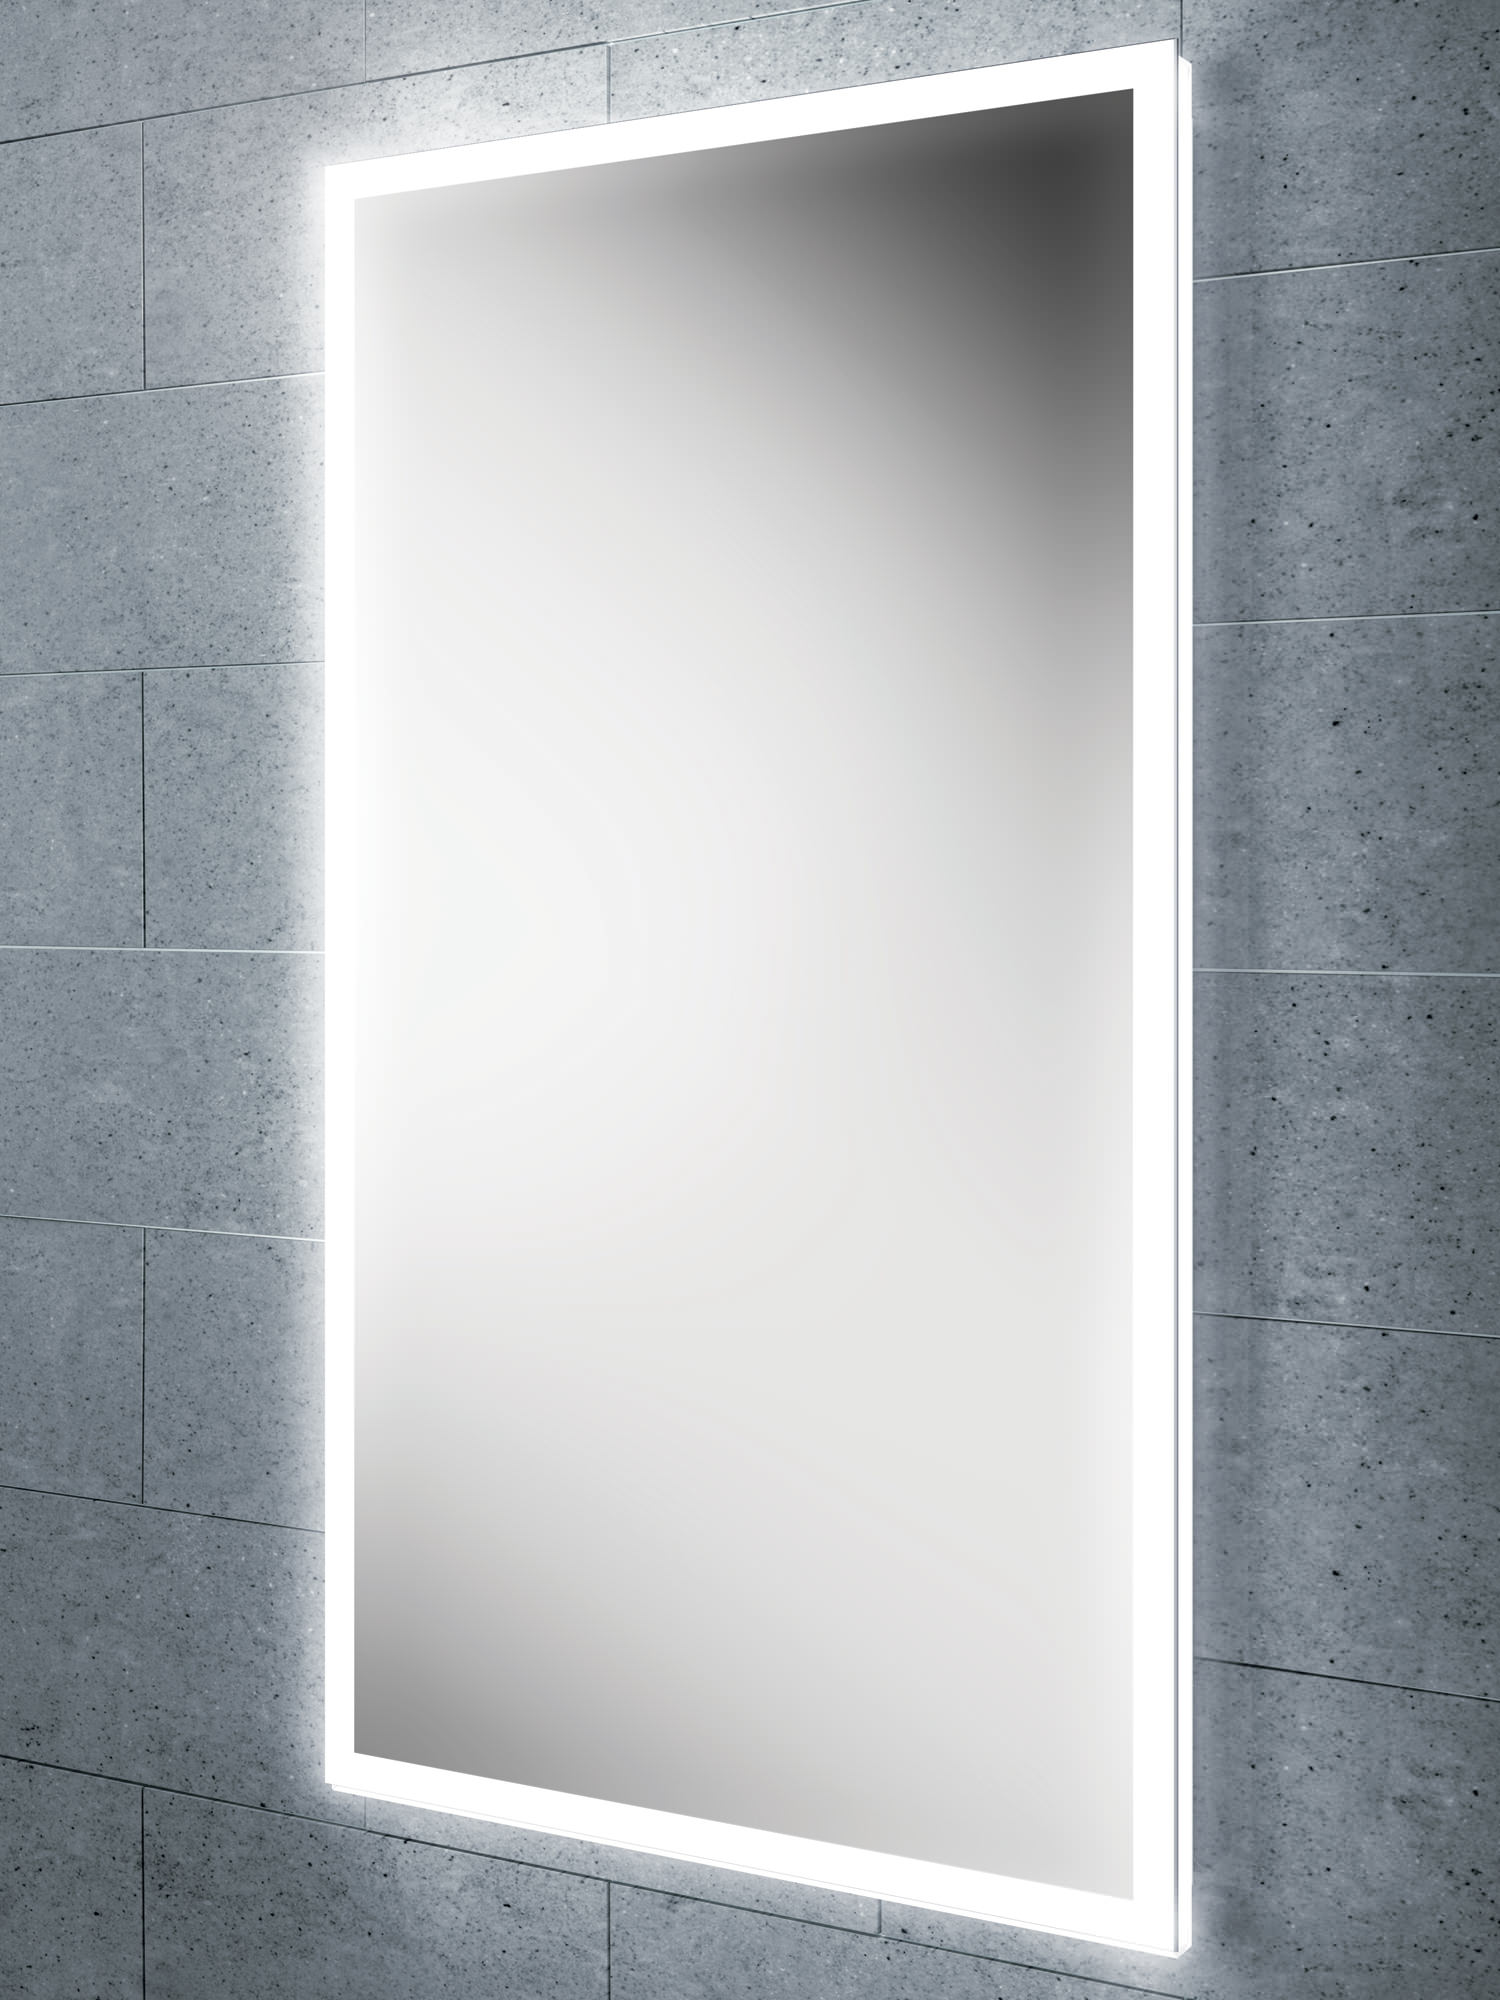 Illuminated Bathroom Mirror Hib Globe 50 Steam Free Led Illuminated Bathroom Mirror 500 X 700mm